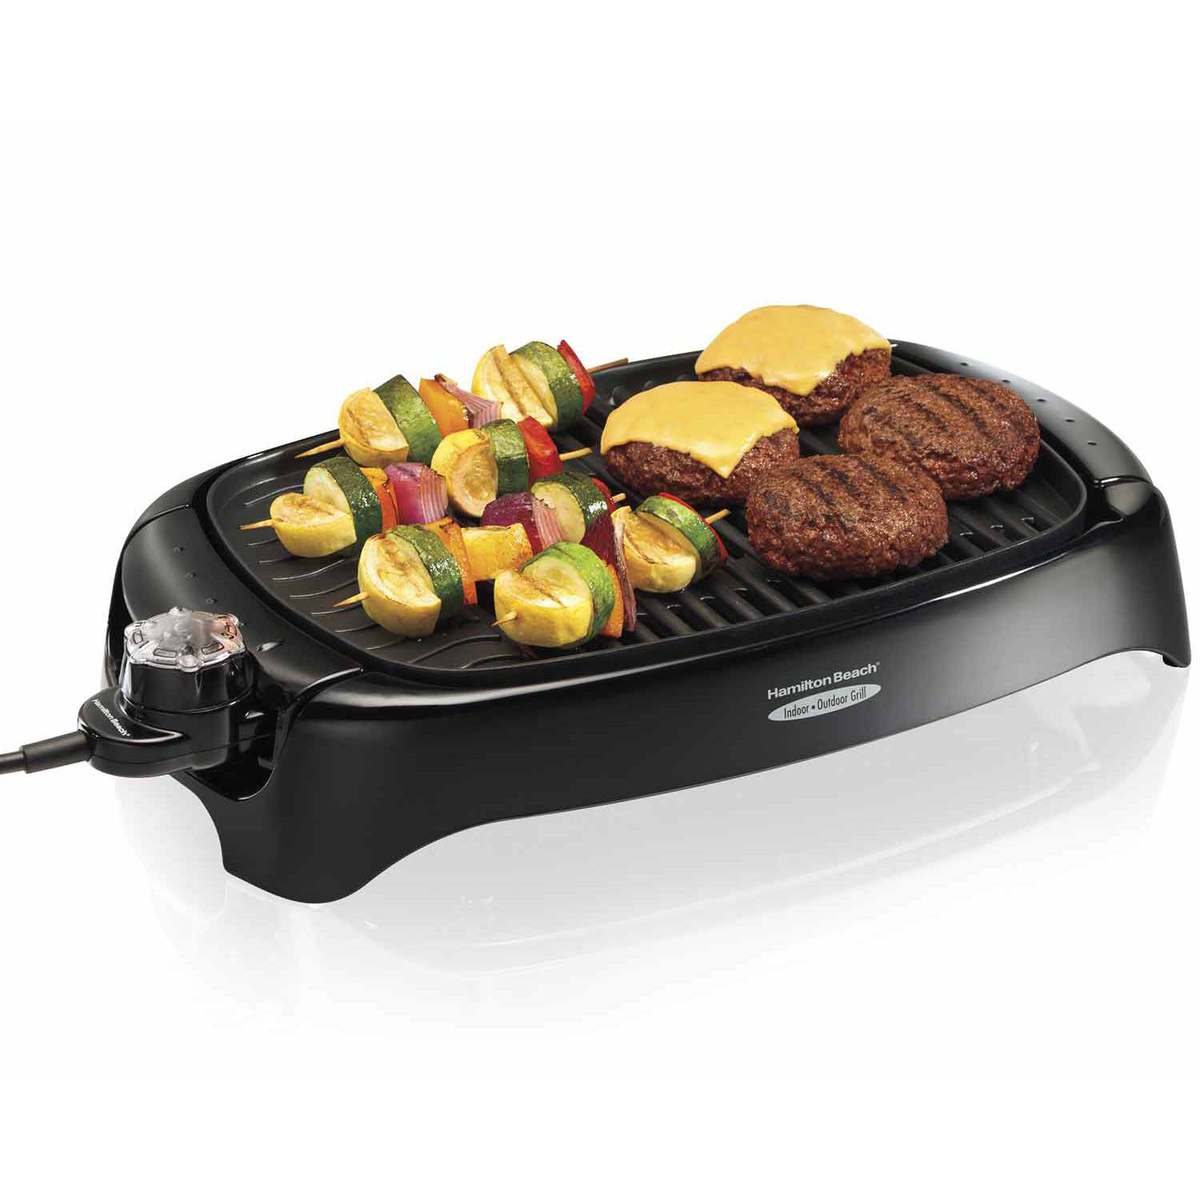 Hamilton Beach Health Smart Indoor Outdoor Grill 31605n - Grill Outdoor